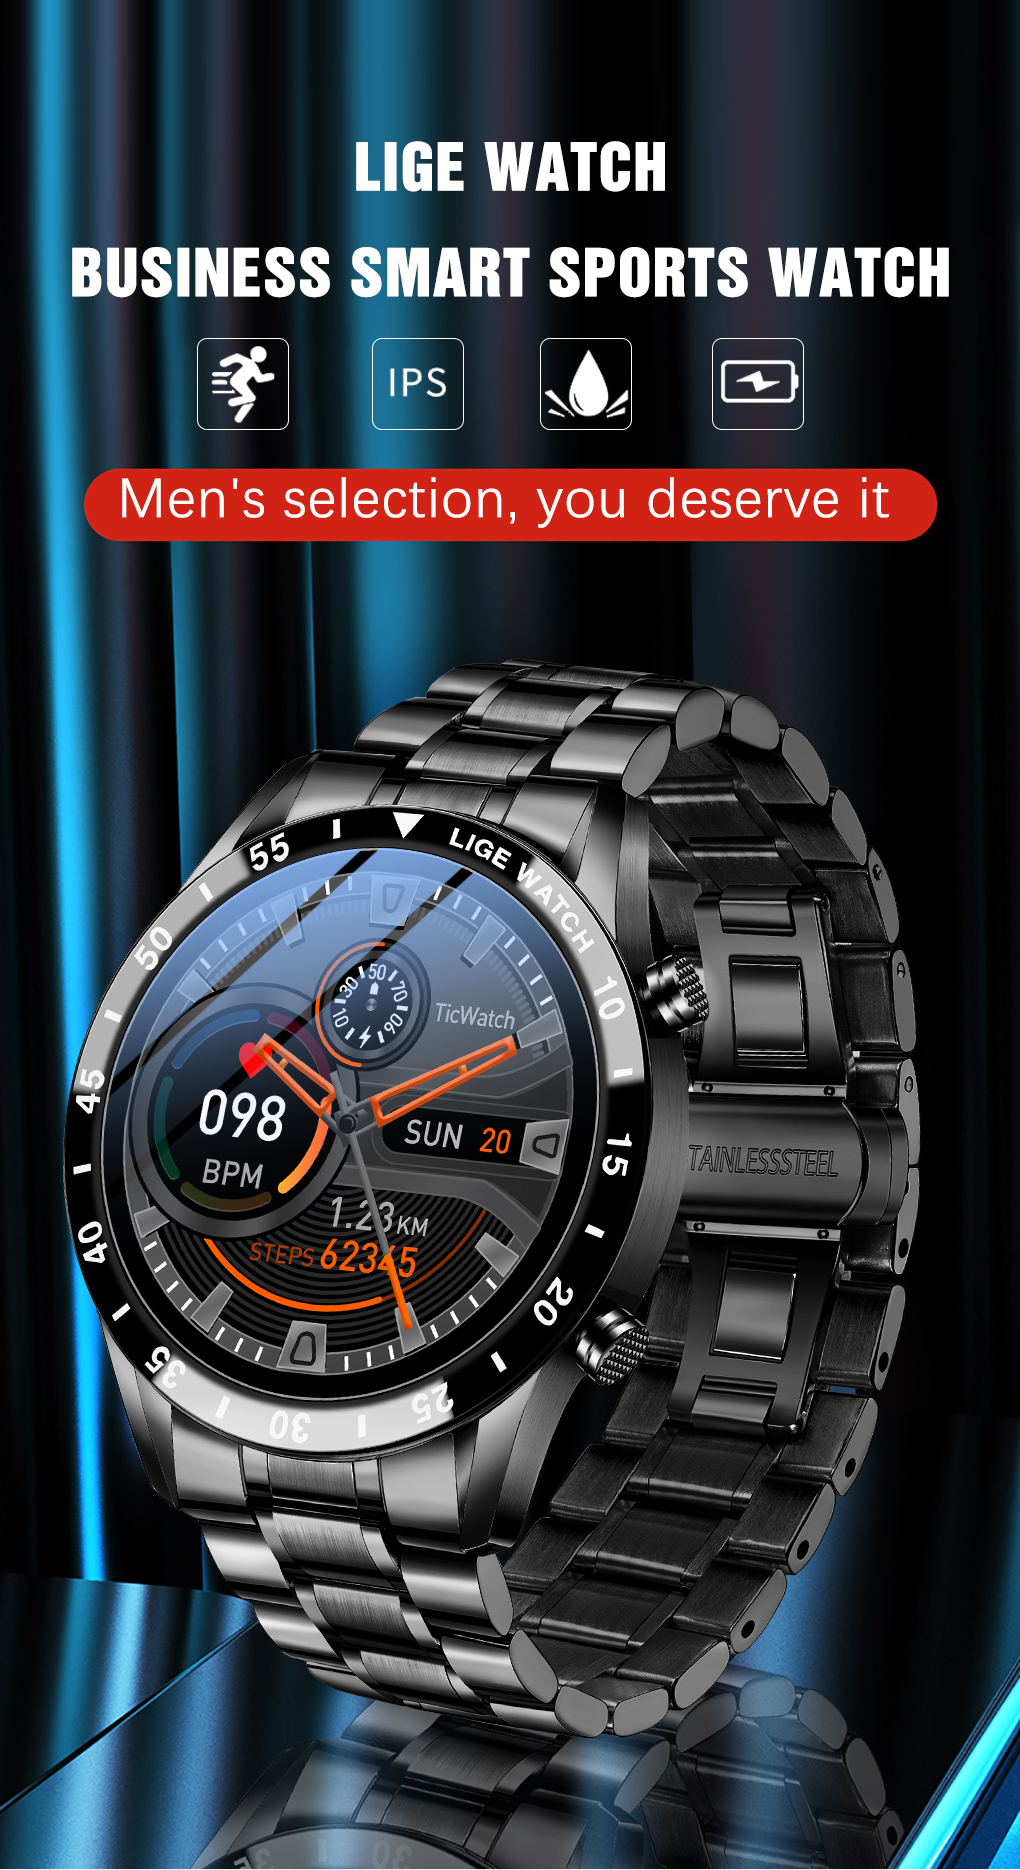 H961271d2a875476bbbcf7a8fa5f8f08bg LIGE 2021 New Smart Watch Men Full Touch Screen Sports Fitness Watch Waterproof Bluetooth Call For Android iOS Smartwatch Mens